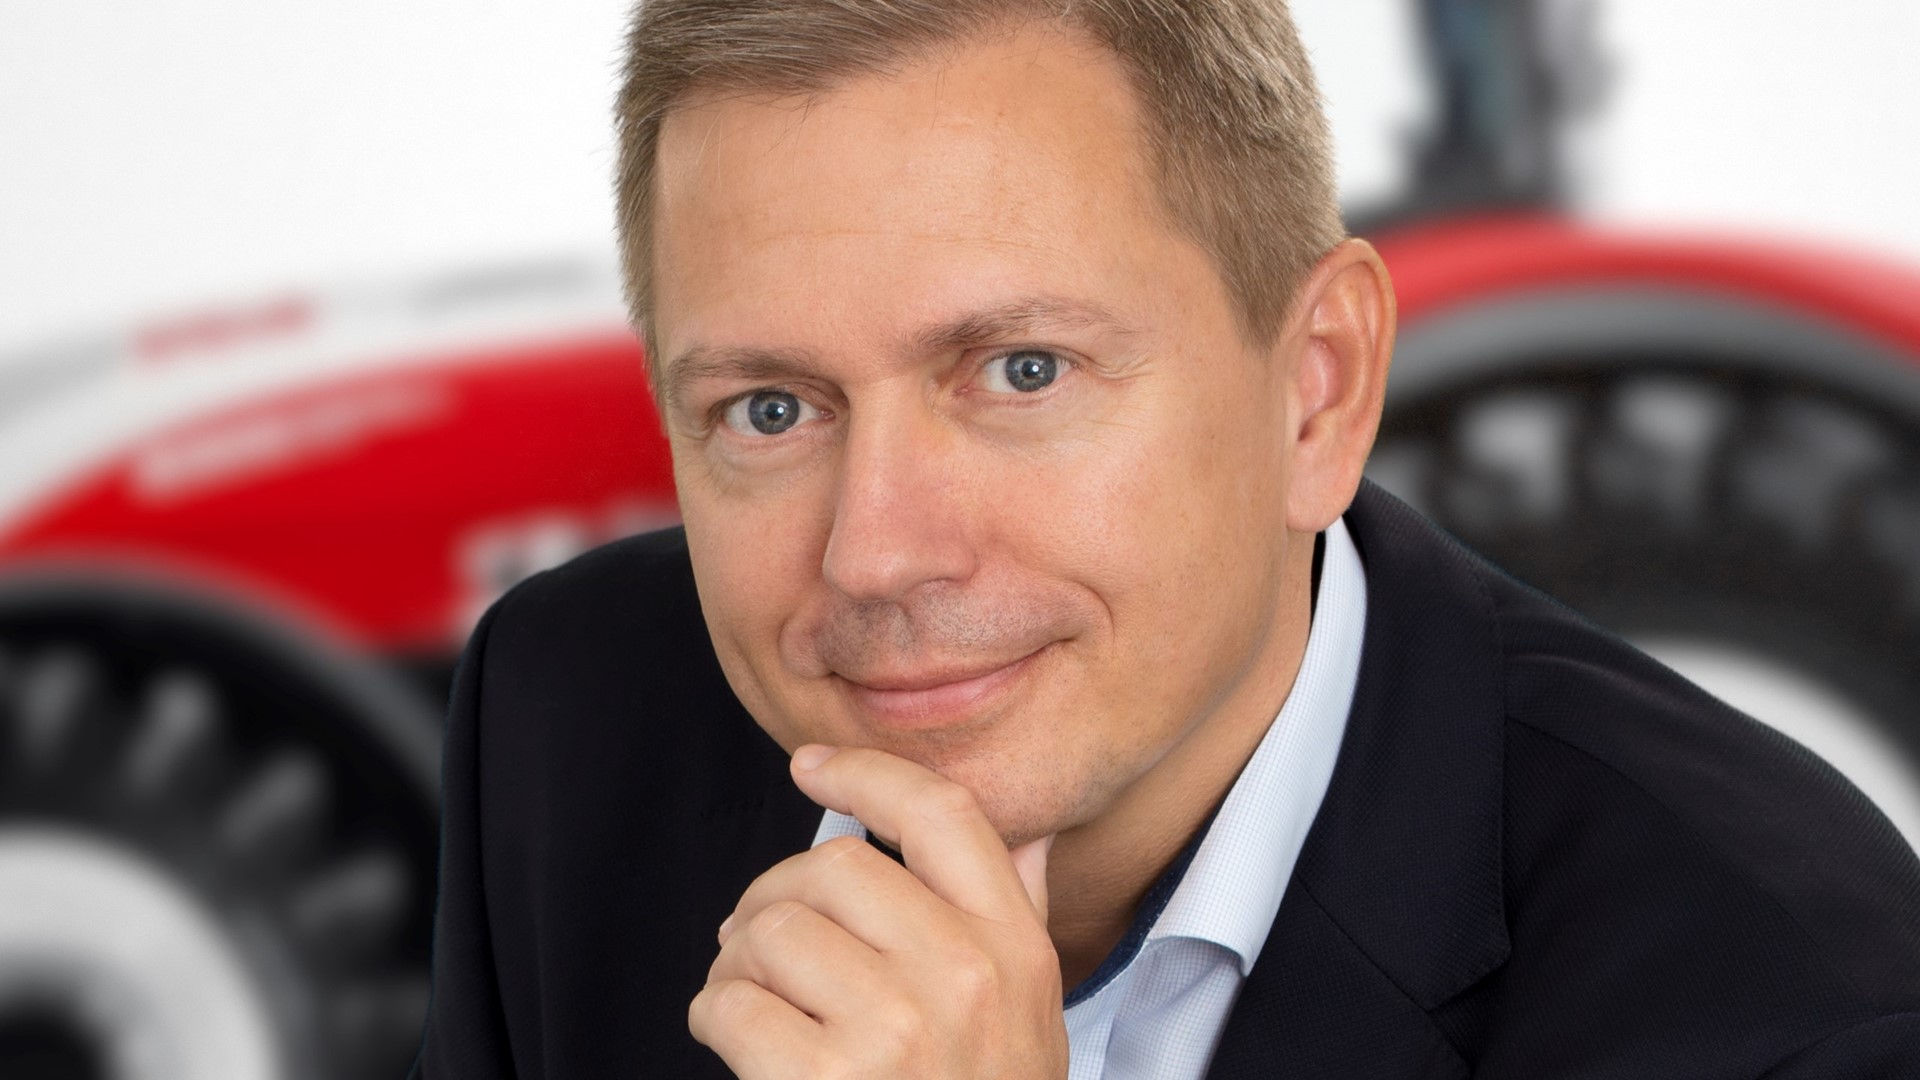 Peter Friis, new Head of STEYR Commercial Operations